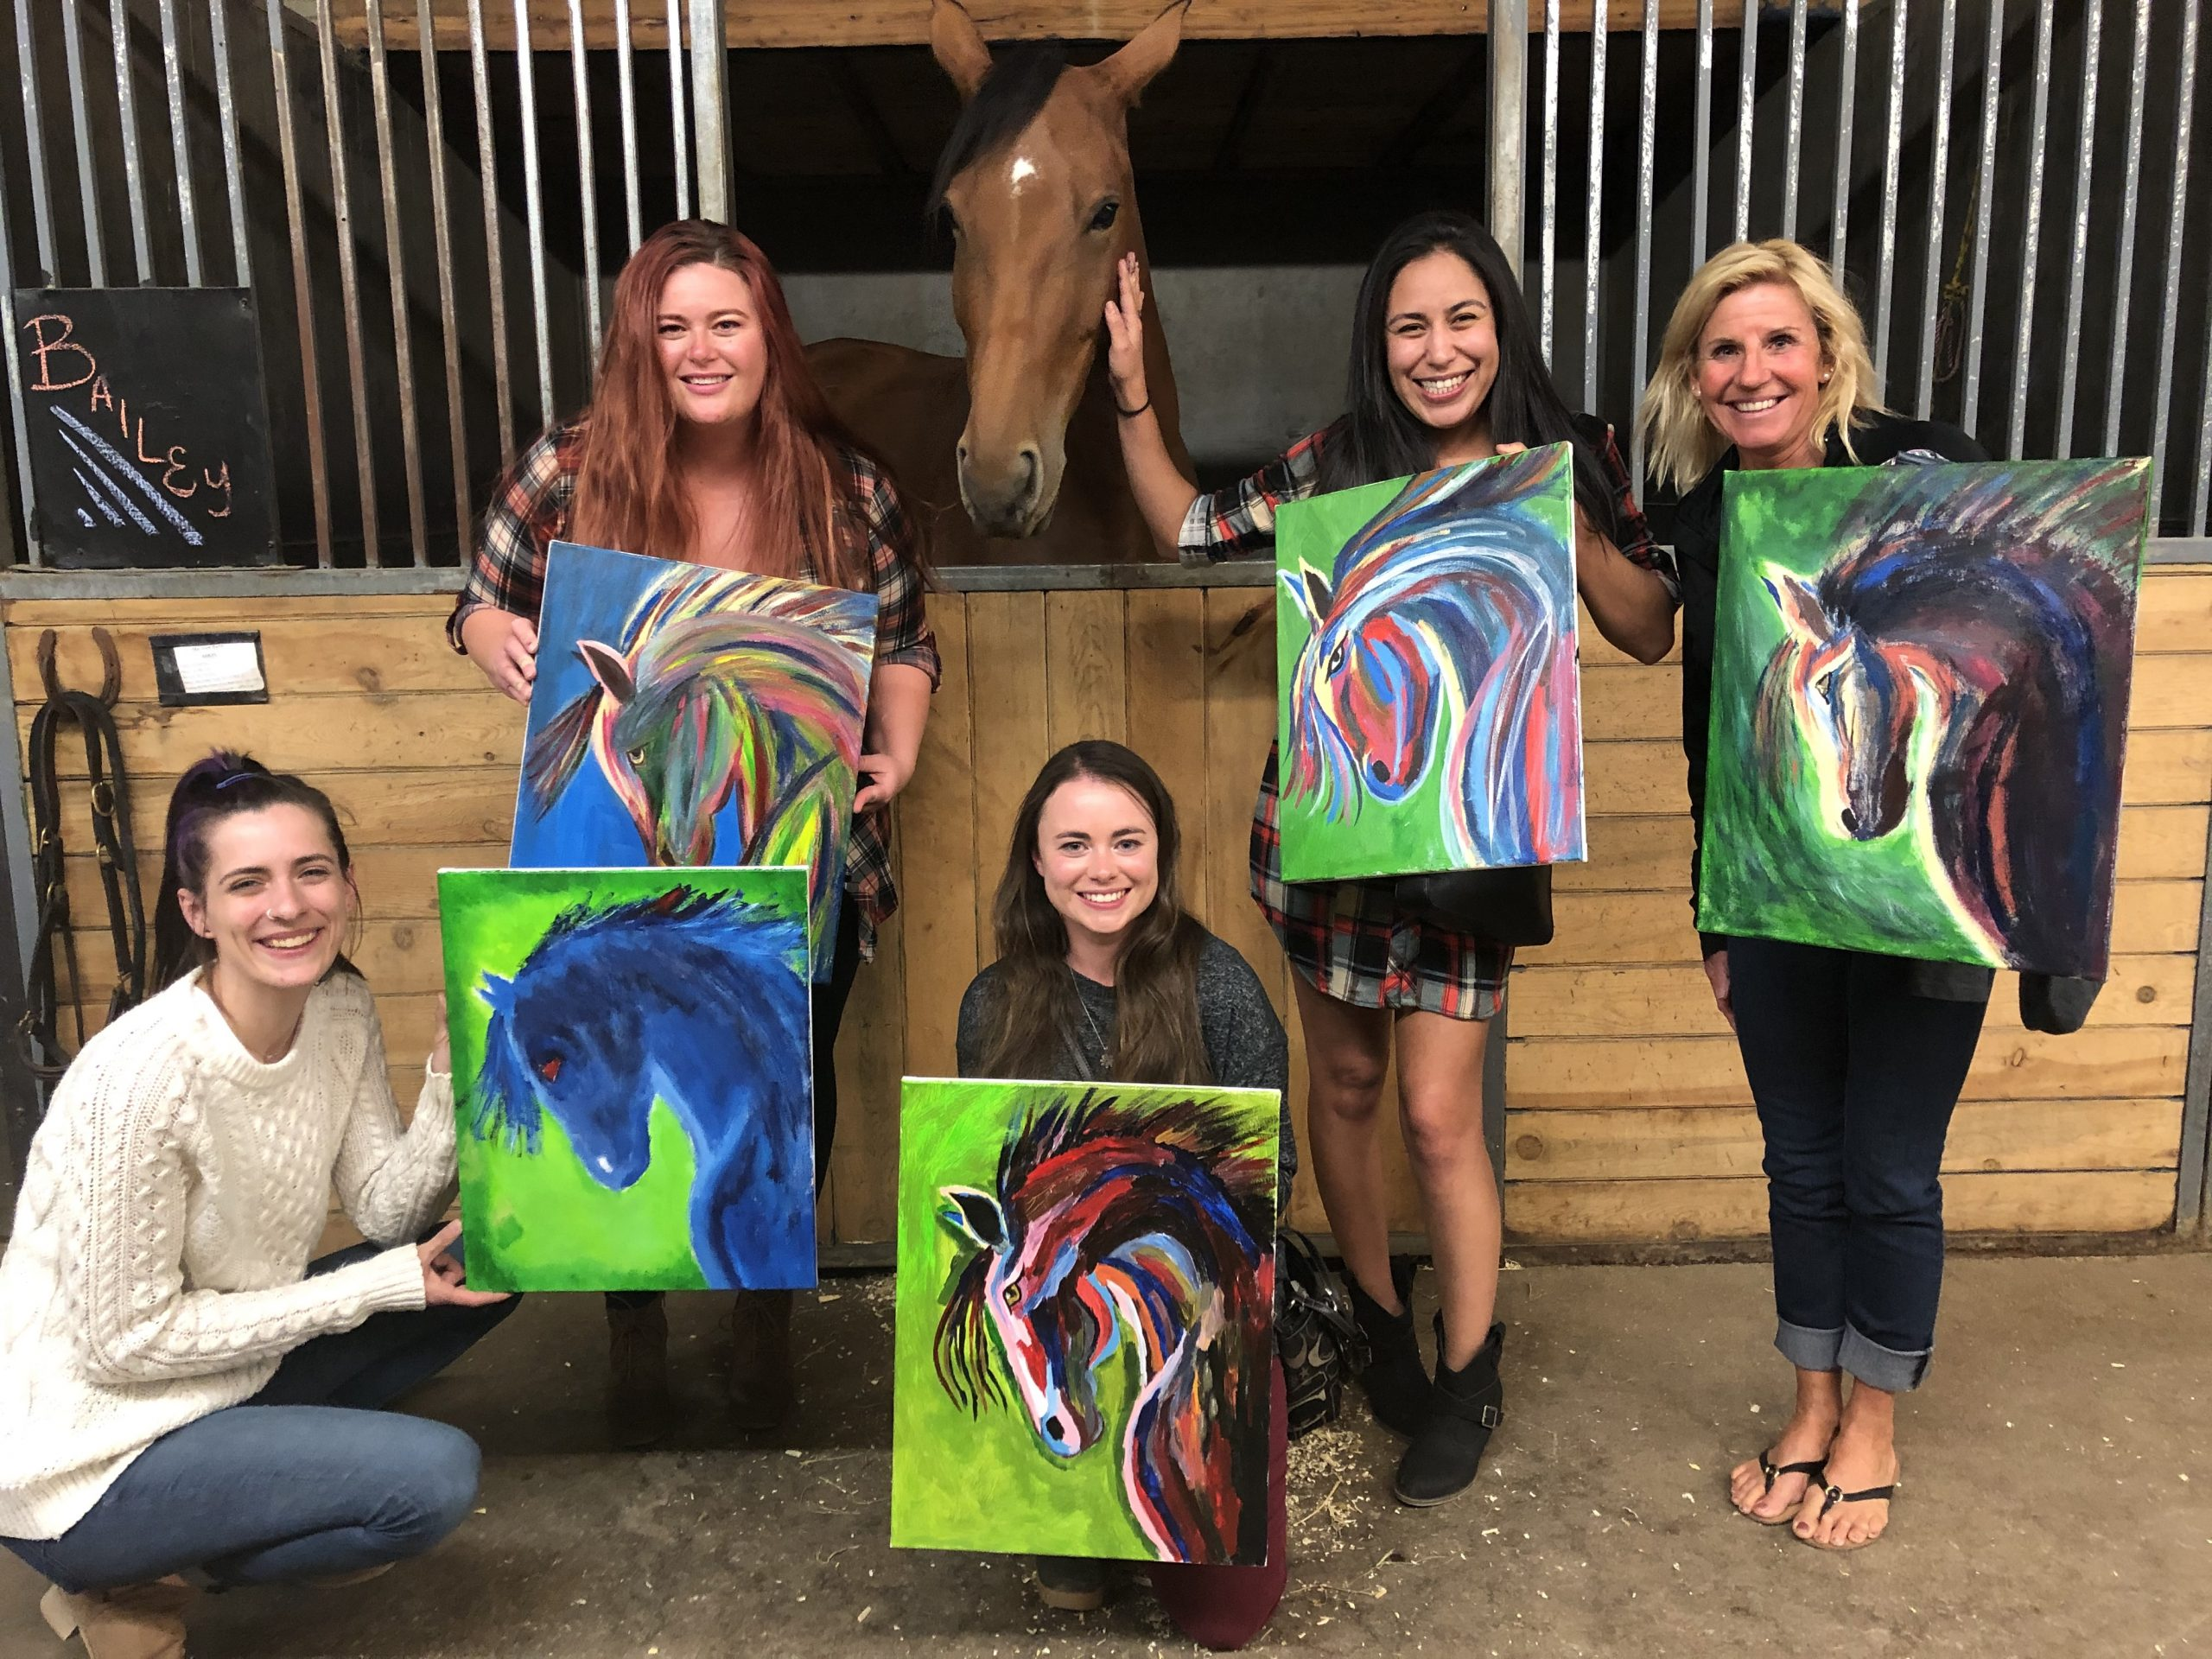 Girls night out at paint and party